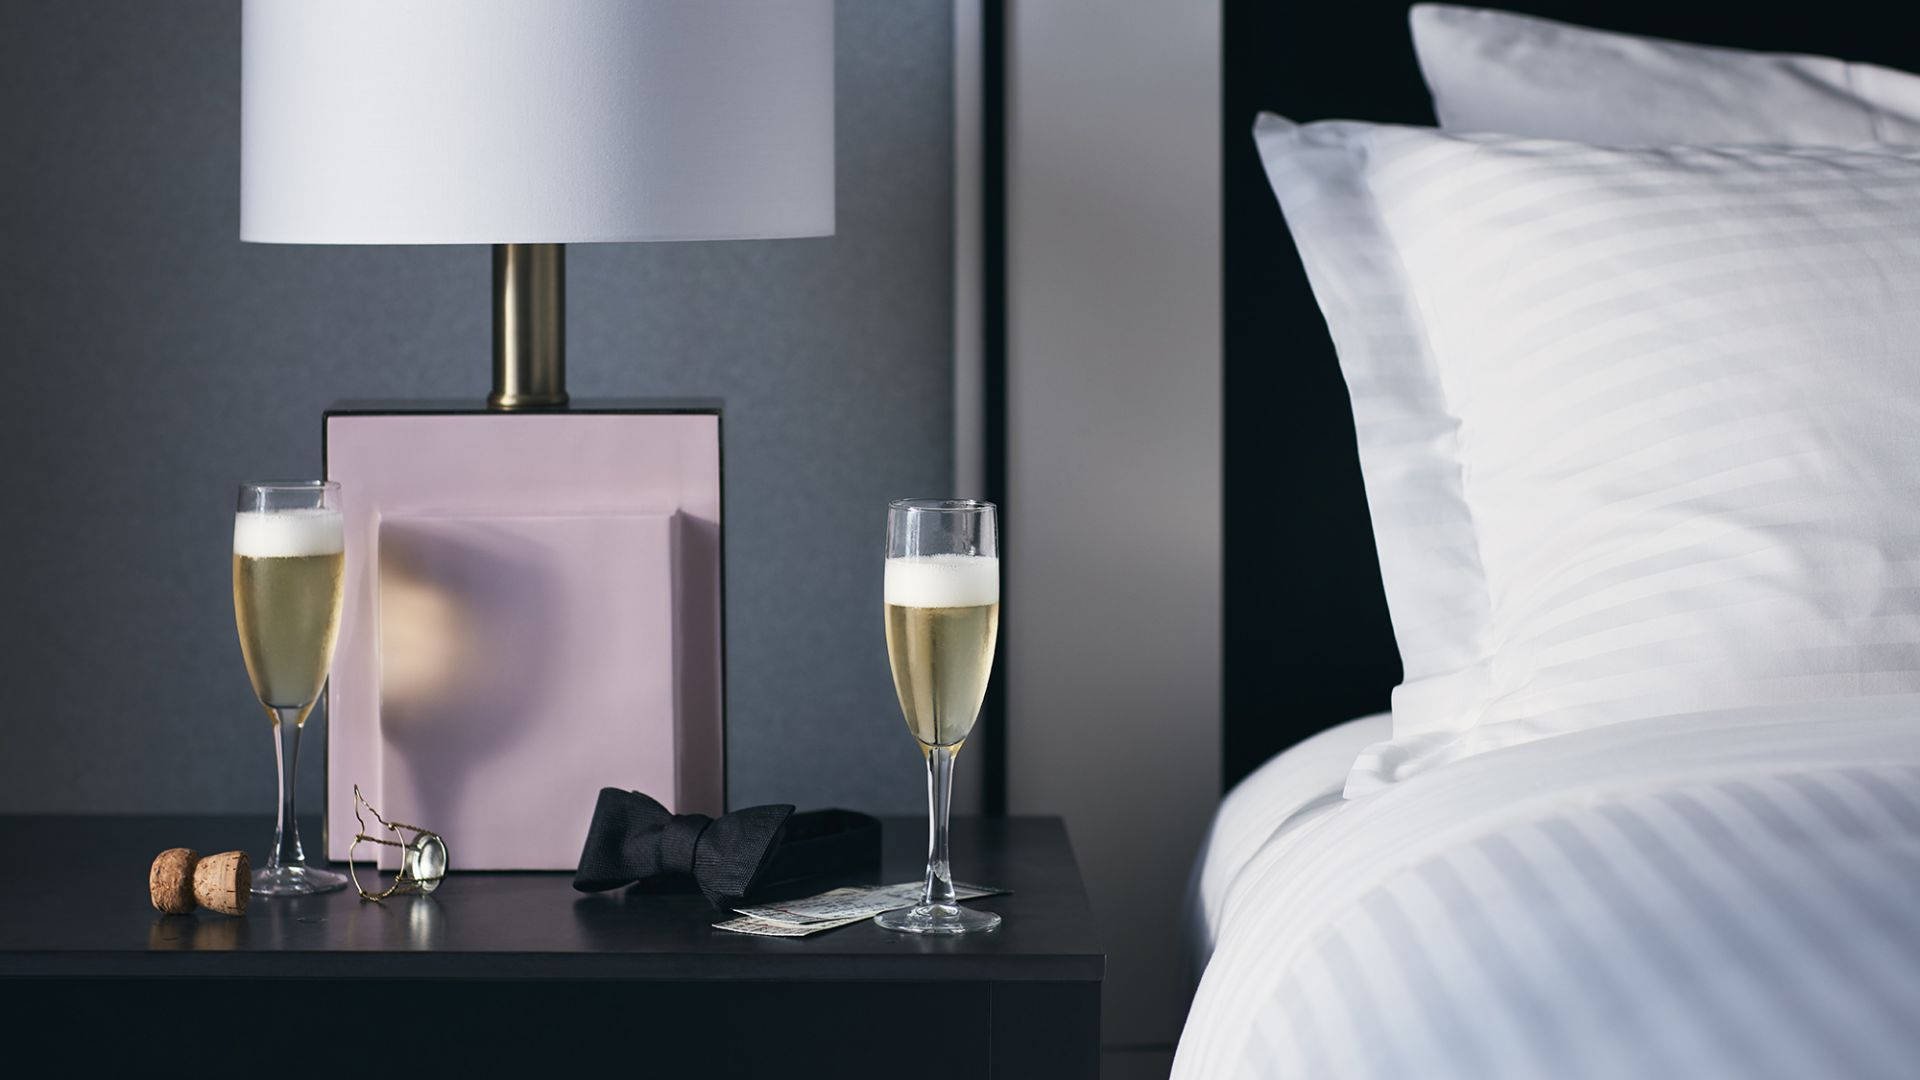 <strong> Sweeten Your Stay | Enjoy more of the comforts and amenities you love </strong>|A Wonderful|Place to Wander| Book Now